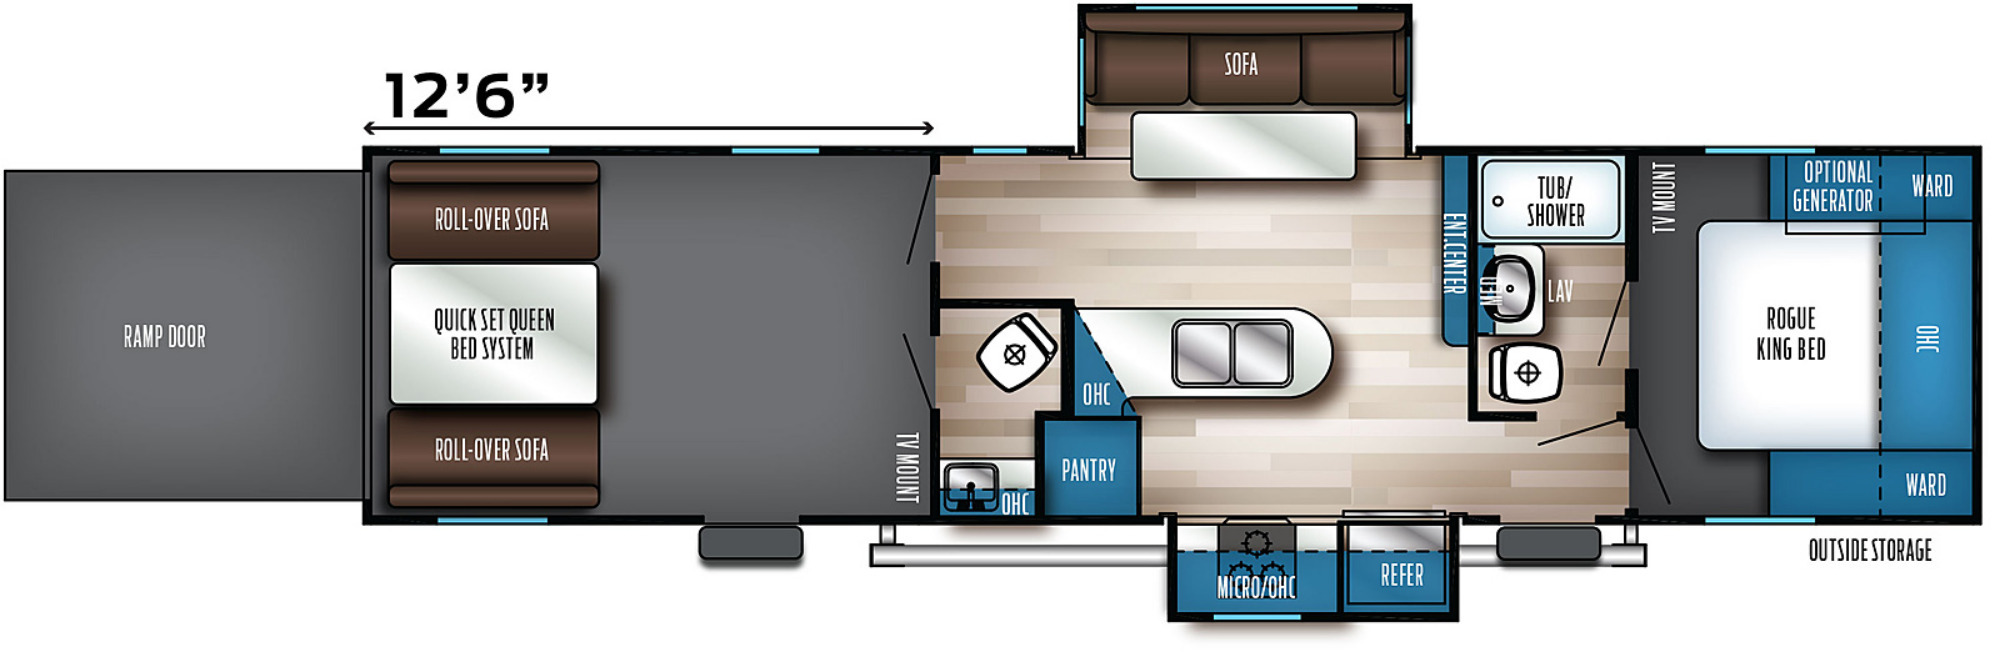 View Floor Plan for 2022 FOREST RIVER ROGUE 32V